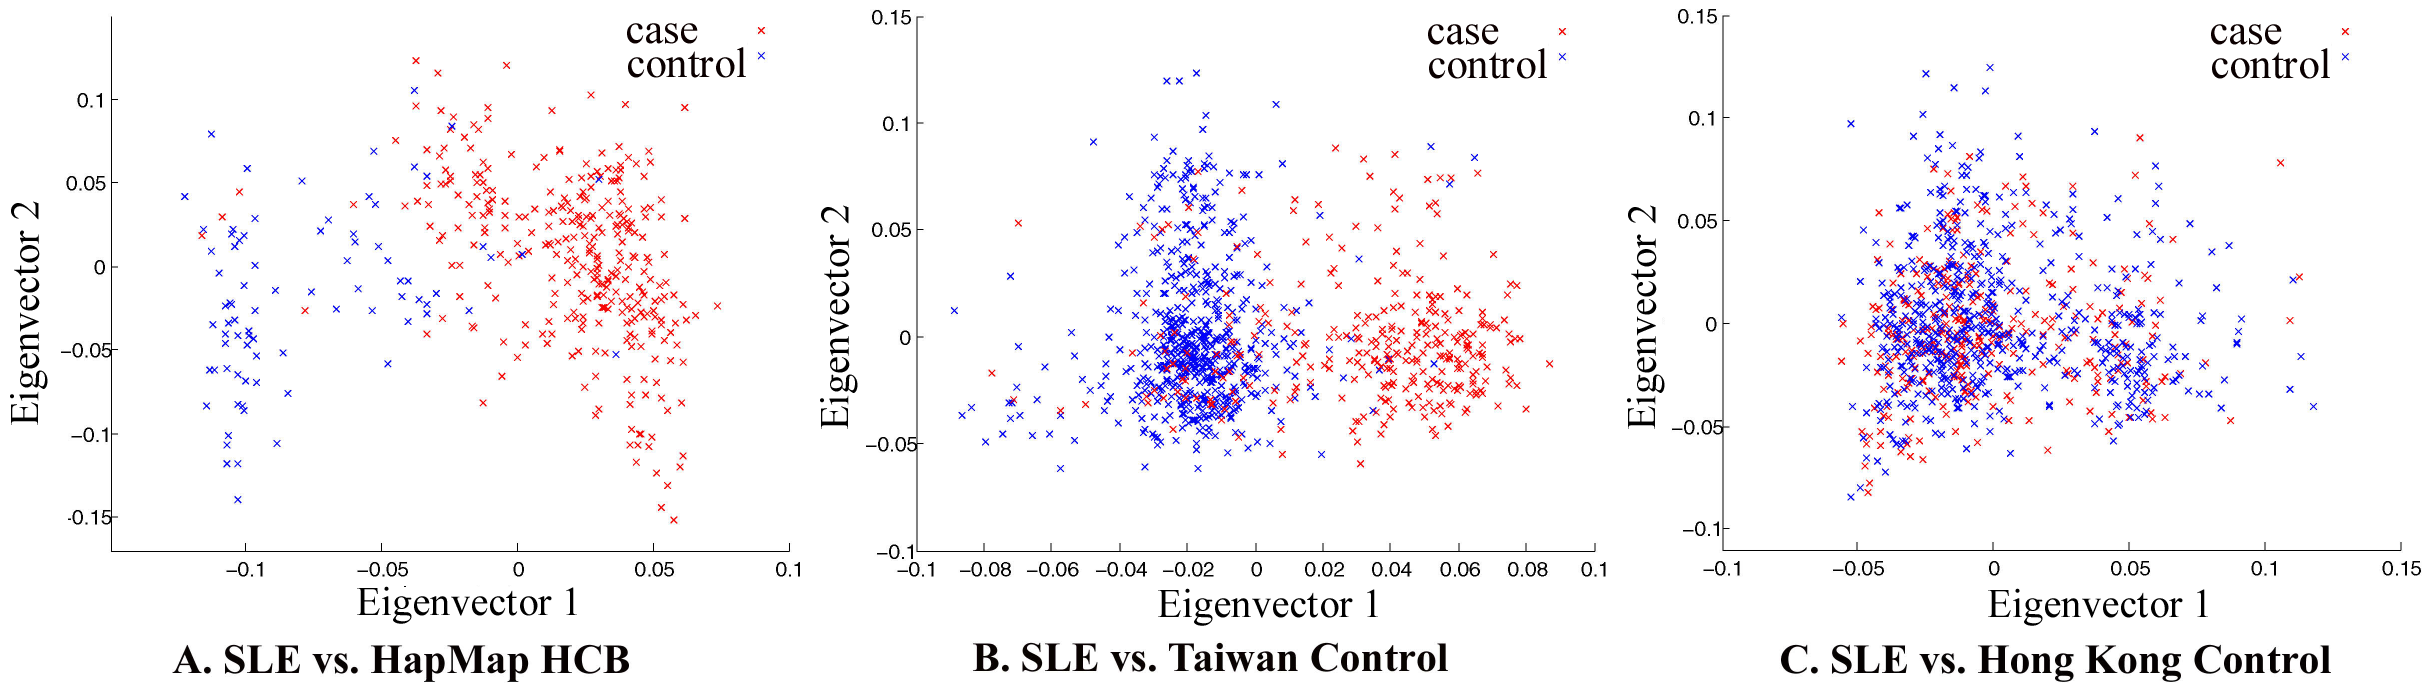 Principal component analysis of Chinese samples collected in Hong Kong, Taiwan, and Beijing.